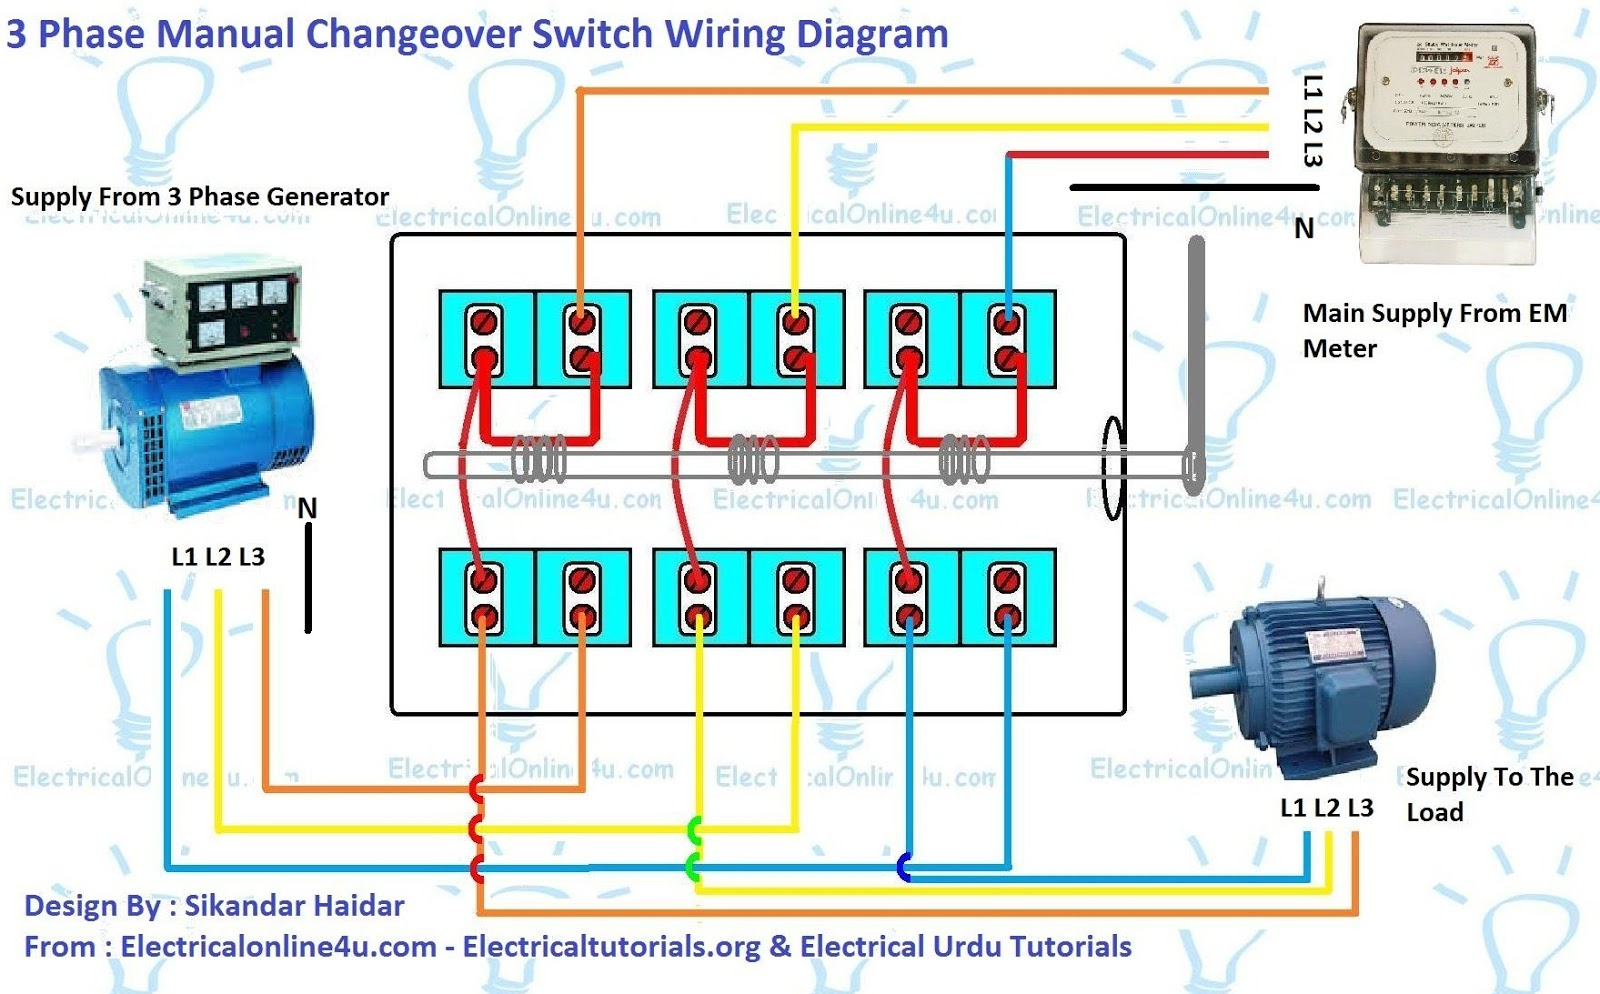 3 Phase Wiring Control Diagram Diagrams Circuit Breaker Box Panel Manual Changeover Switch For Submersible Pump Water